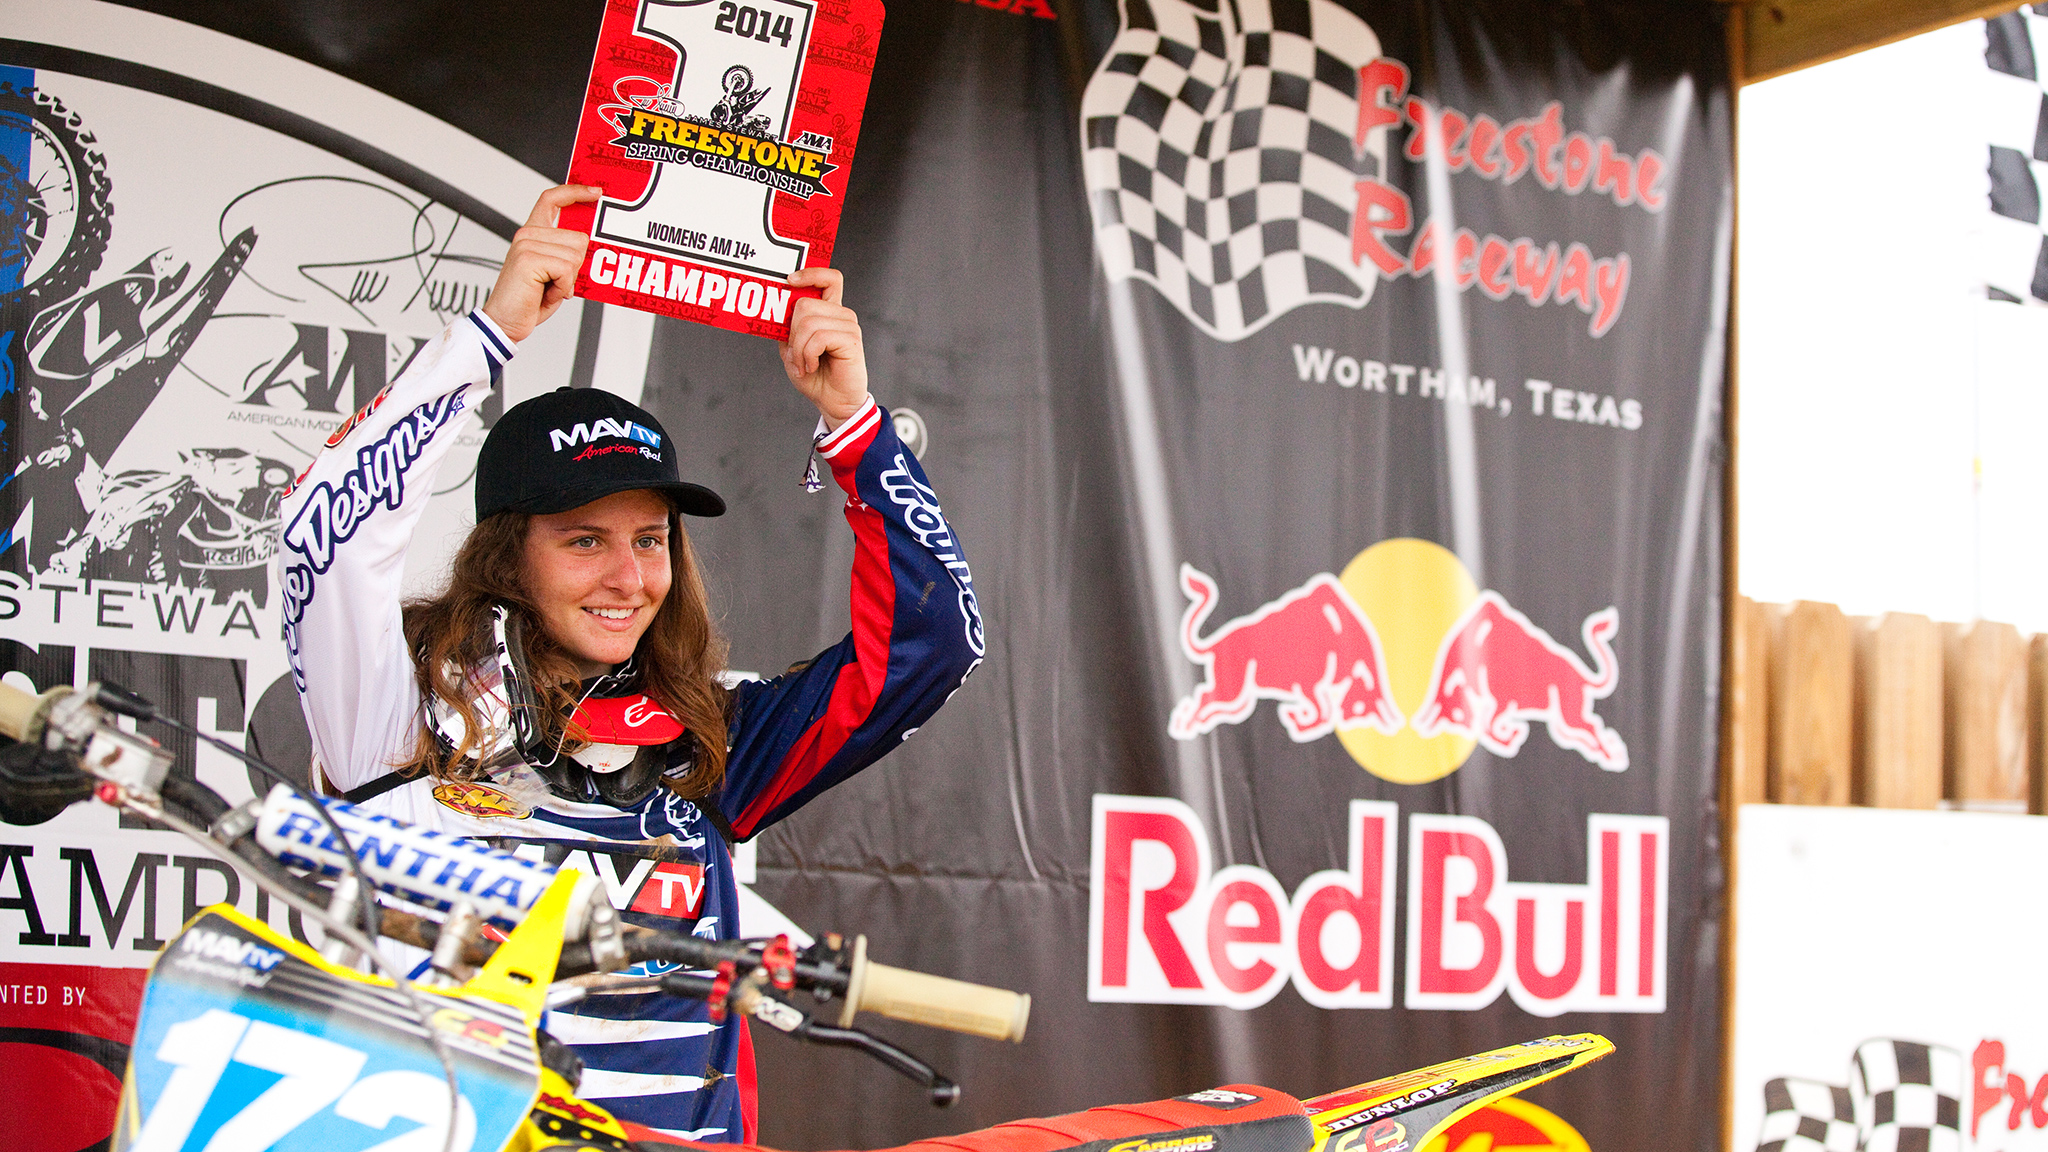 At the 2014 James Stewart Freestone Spring Championship held March 18-22 at Freestone in Wortham, Texas, Hannah Hodges took home three titles: Girls senior (12-16), schoolgirl (12-16), and womens amateur 14-plus. Many think Hodges can become the best female rider in the United States. But without a professional female motocross circuit, Hodges' future earnings potential on dirtbikes is limited.